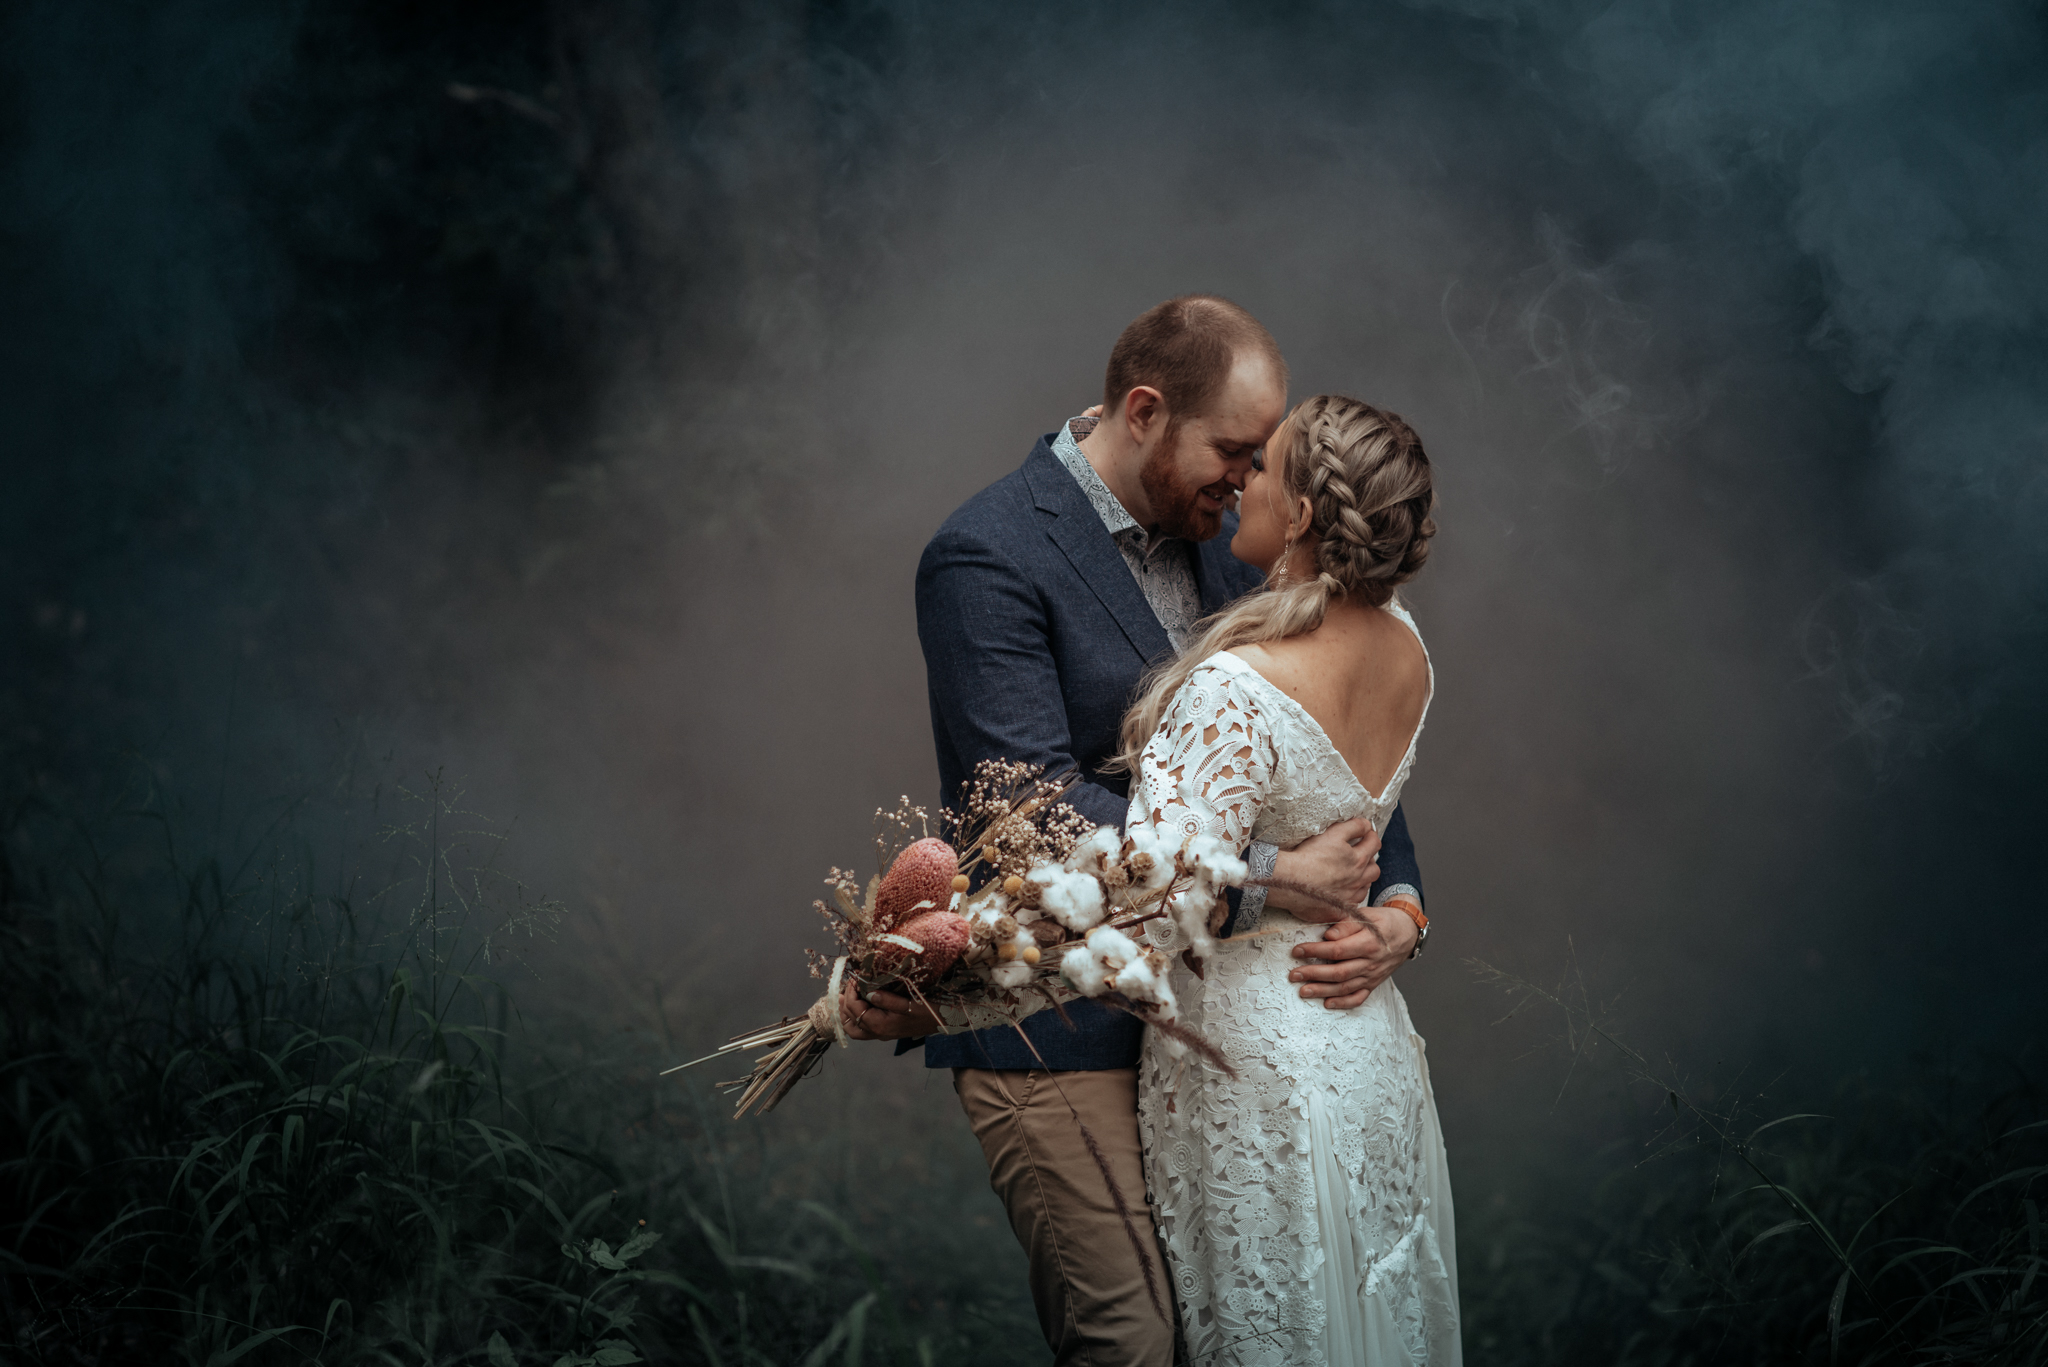 Green + Blue Smoke in the Woods - We chose an enclosed forest section by a creek to trap thick green and blue smoke around our couple, Jacqui & Chris. It was a rainy and overcast day and the smoke lingered around perfectly. Again, we initially ran around behind the couple to create a wall of thick smoke and then stood to the side with the smoke bombs to add some more, walking across every now and again to keep the wall of smoke up behind the couple. This was shot at noon for a first look in natural light.